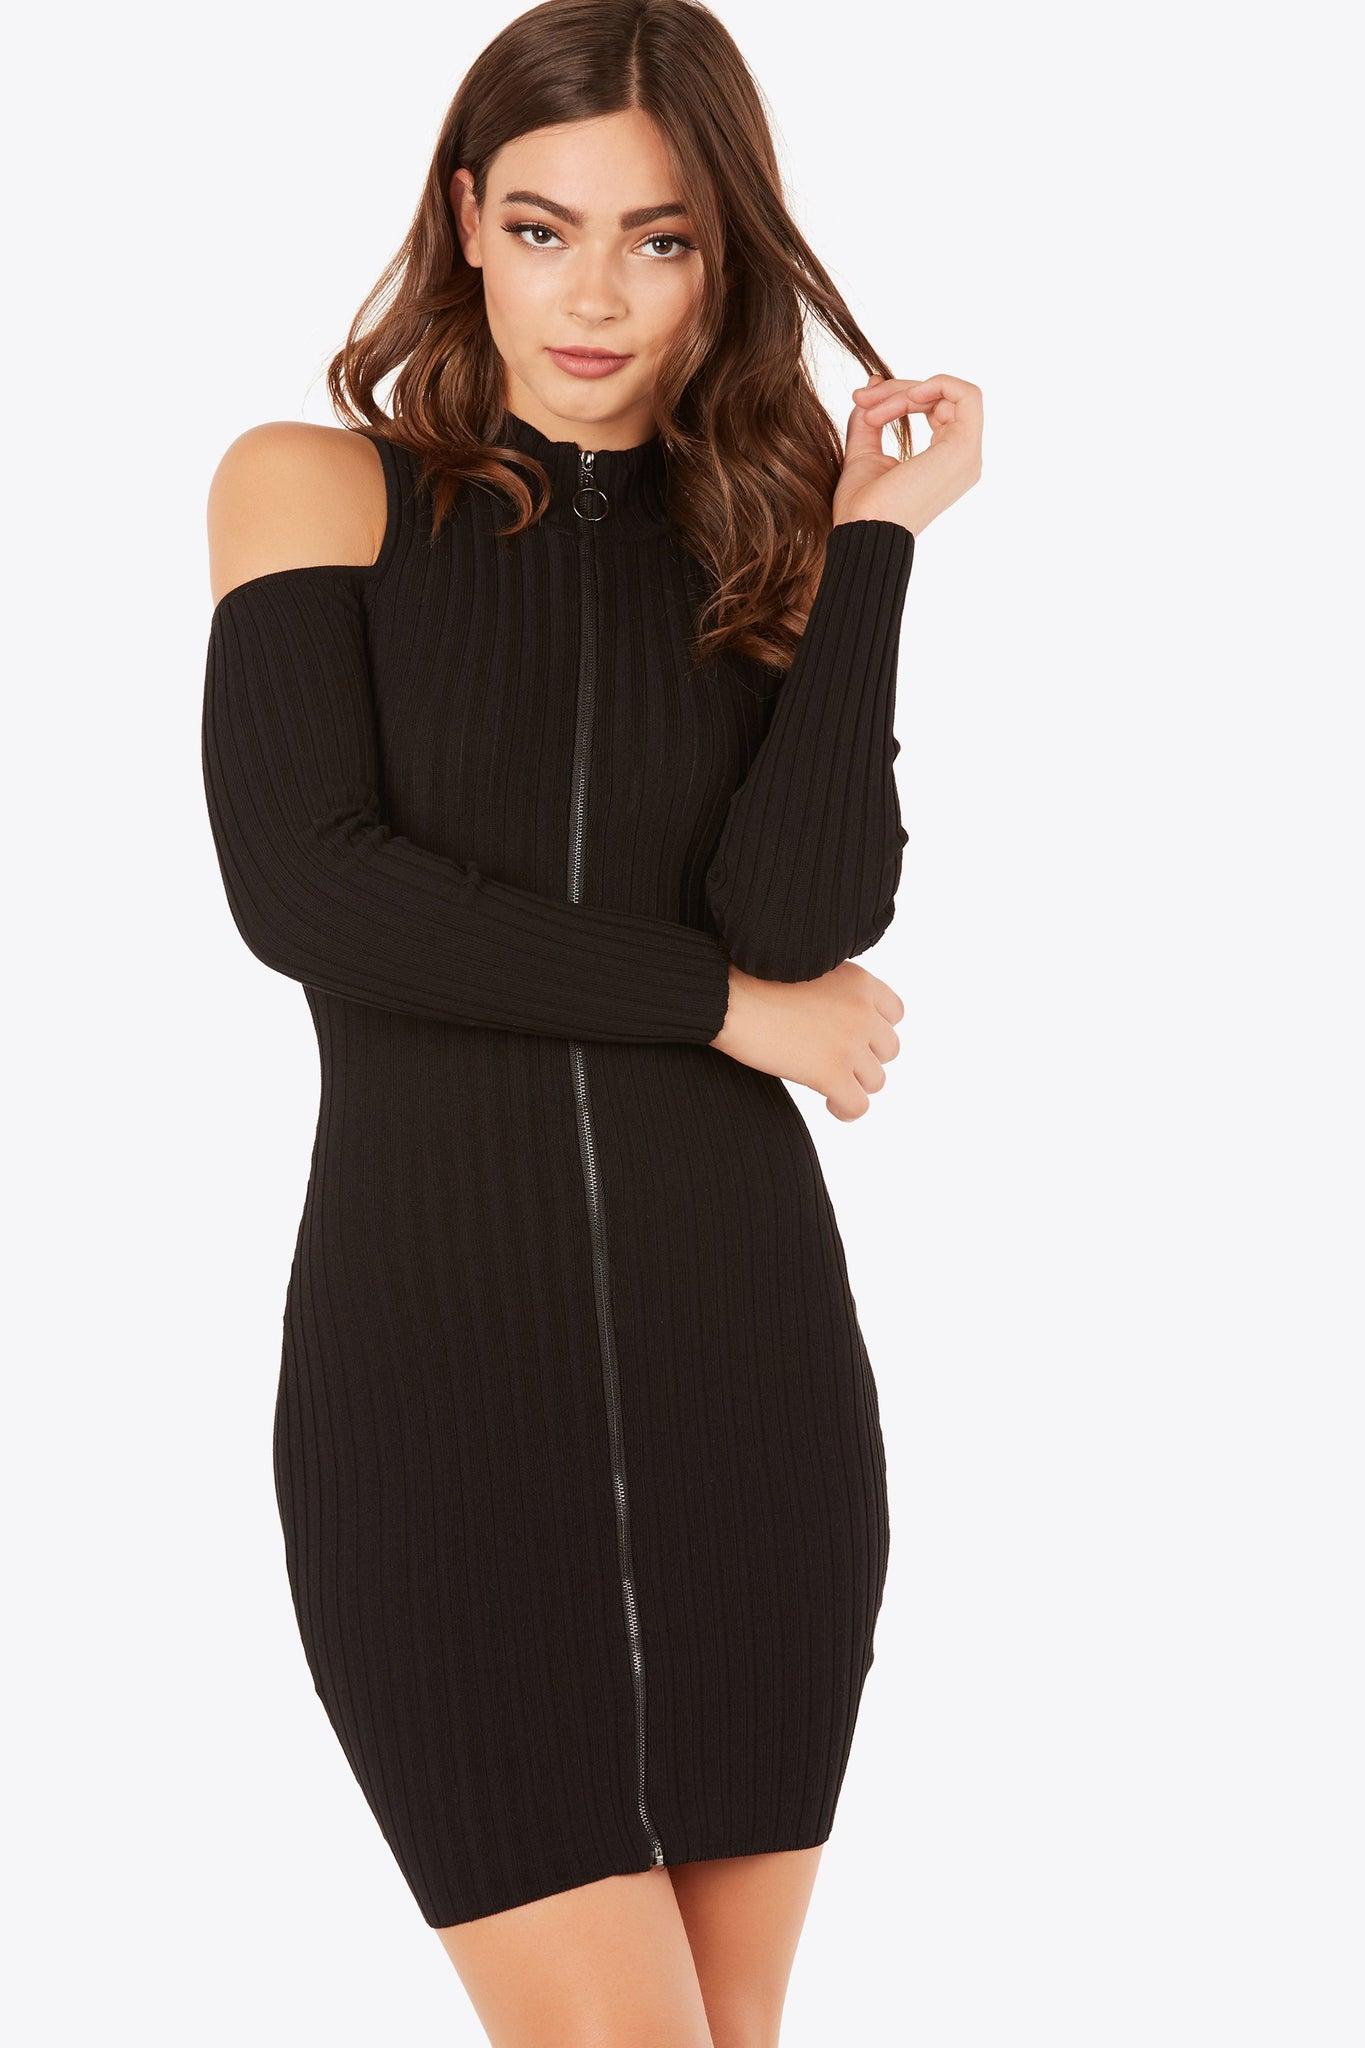 Stretchy ribbed cold shoulder dress with mock neckline. Long sleeves with front zip design.